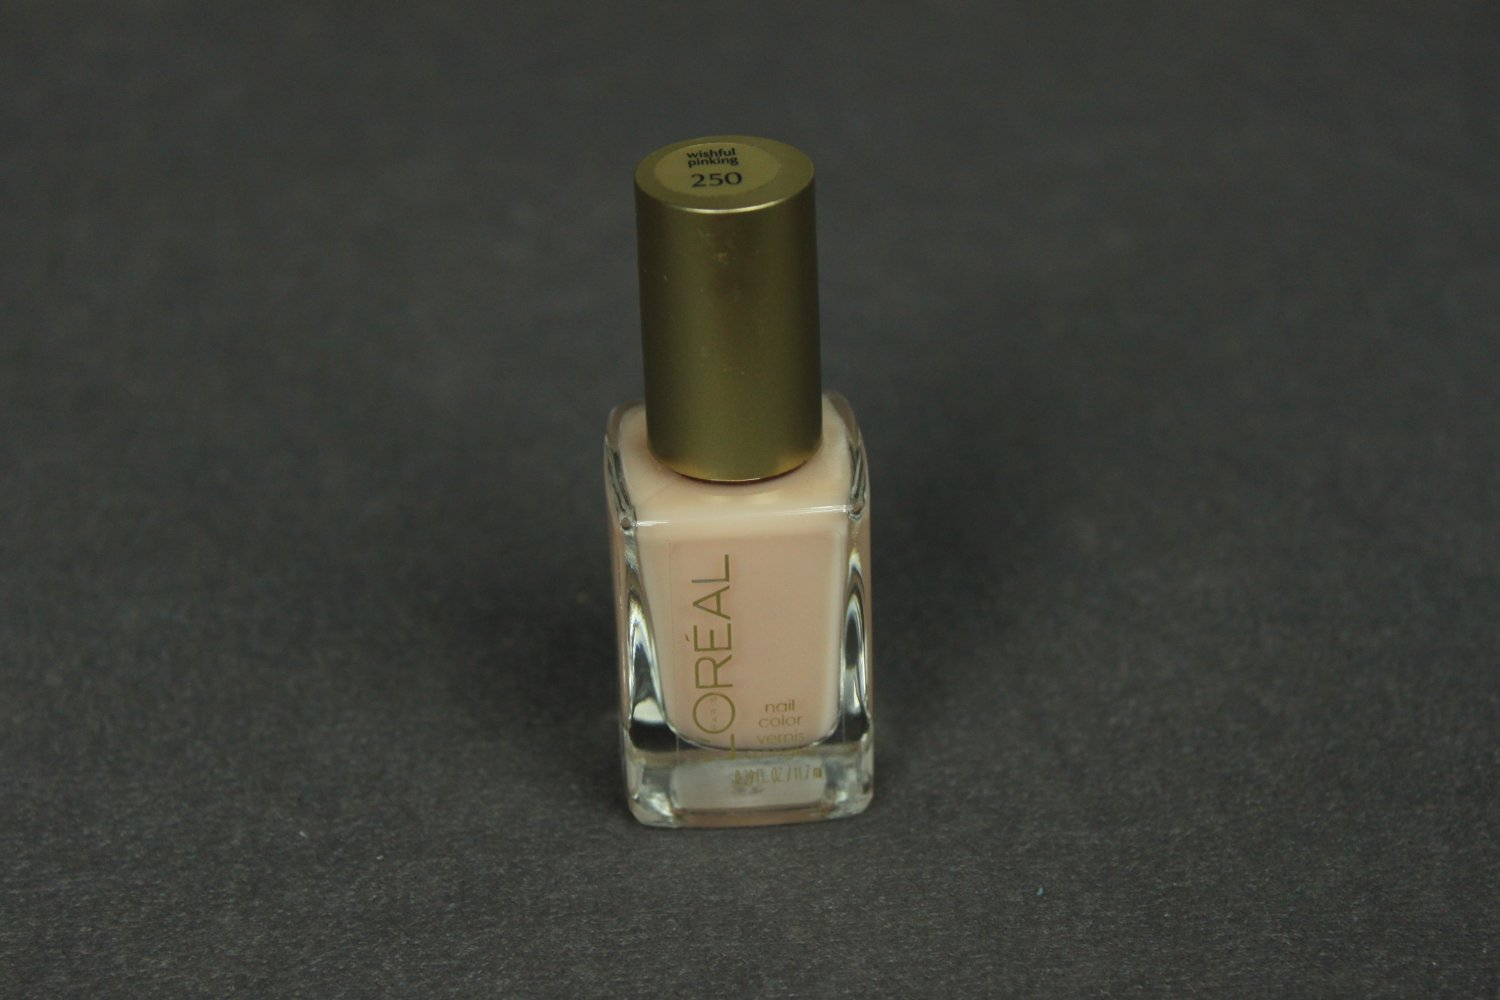 Loreal WISHFUL PINKING Nail Polish #250